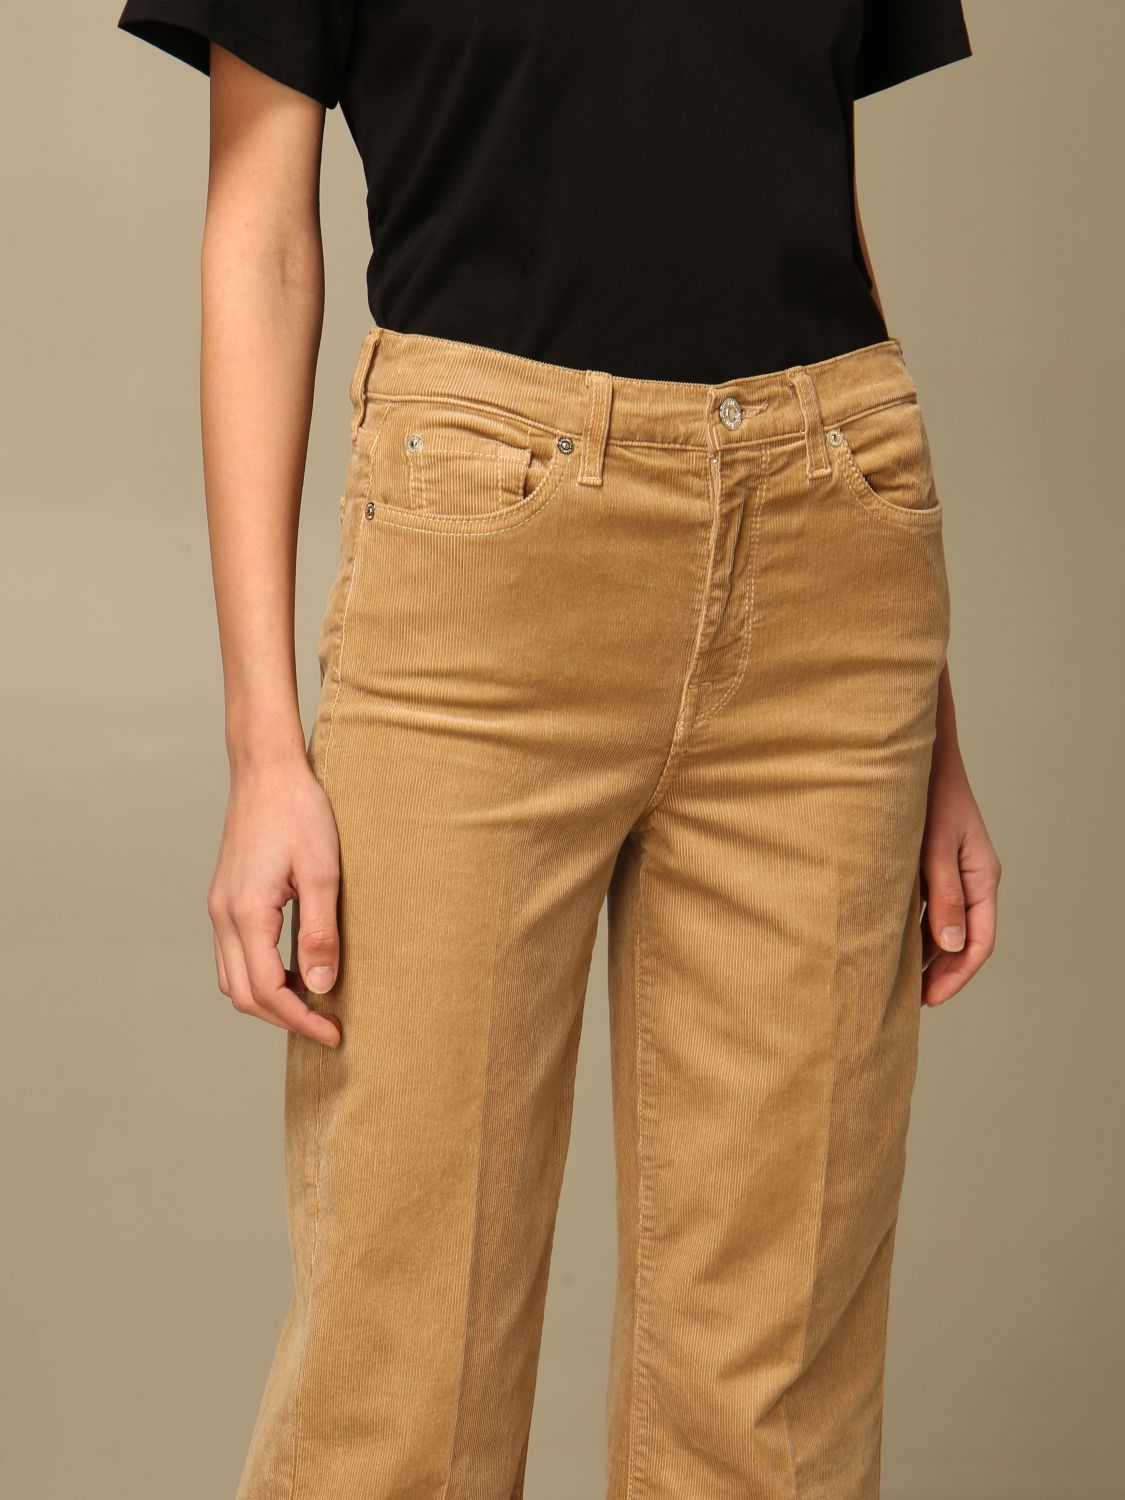 Jeans 7 For All Mankind: Jeans mujer 7 For All Mankind beige 3